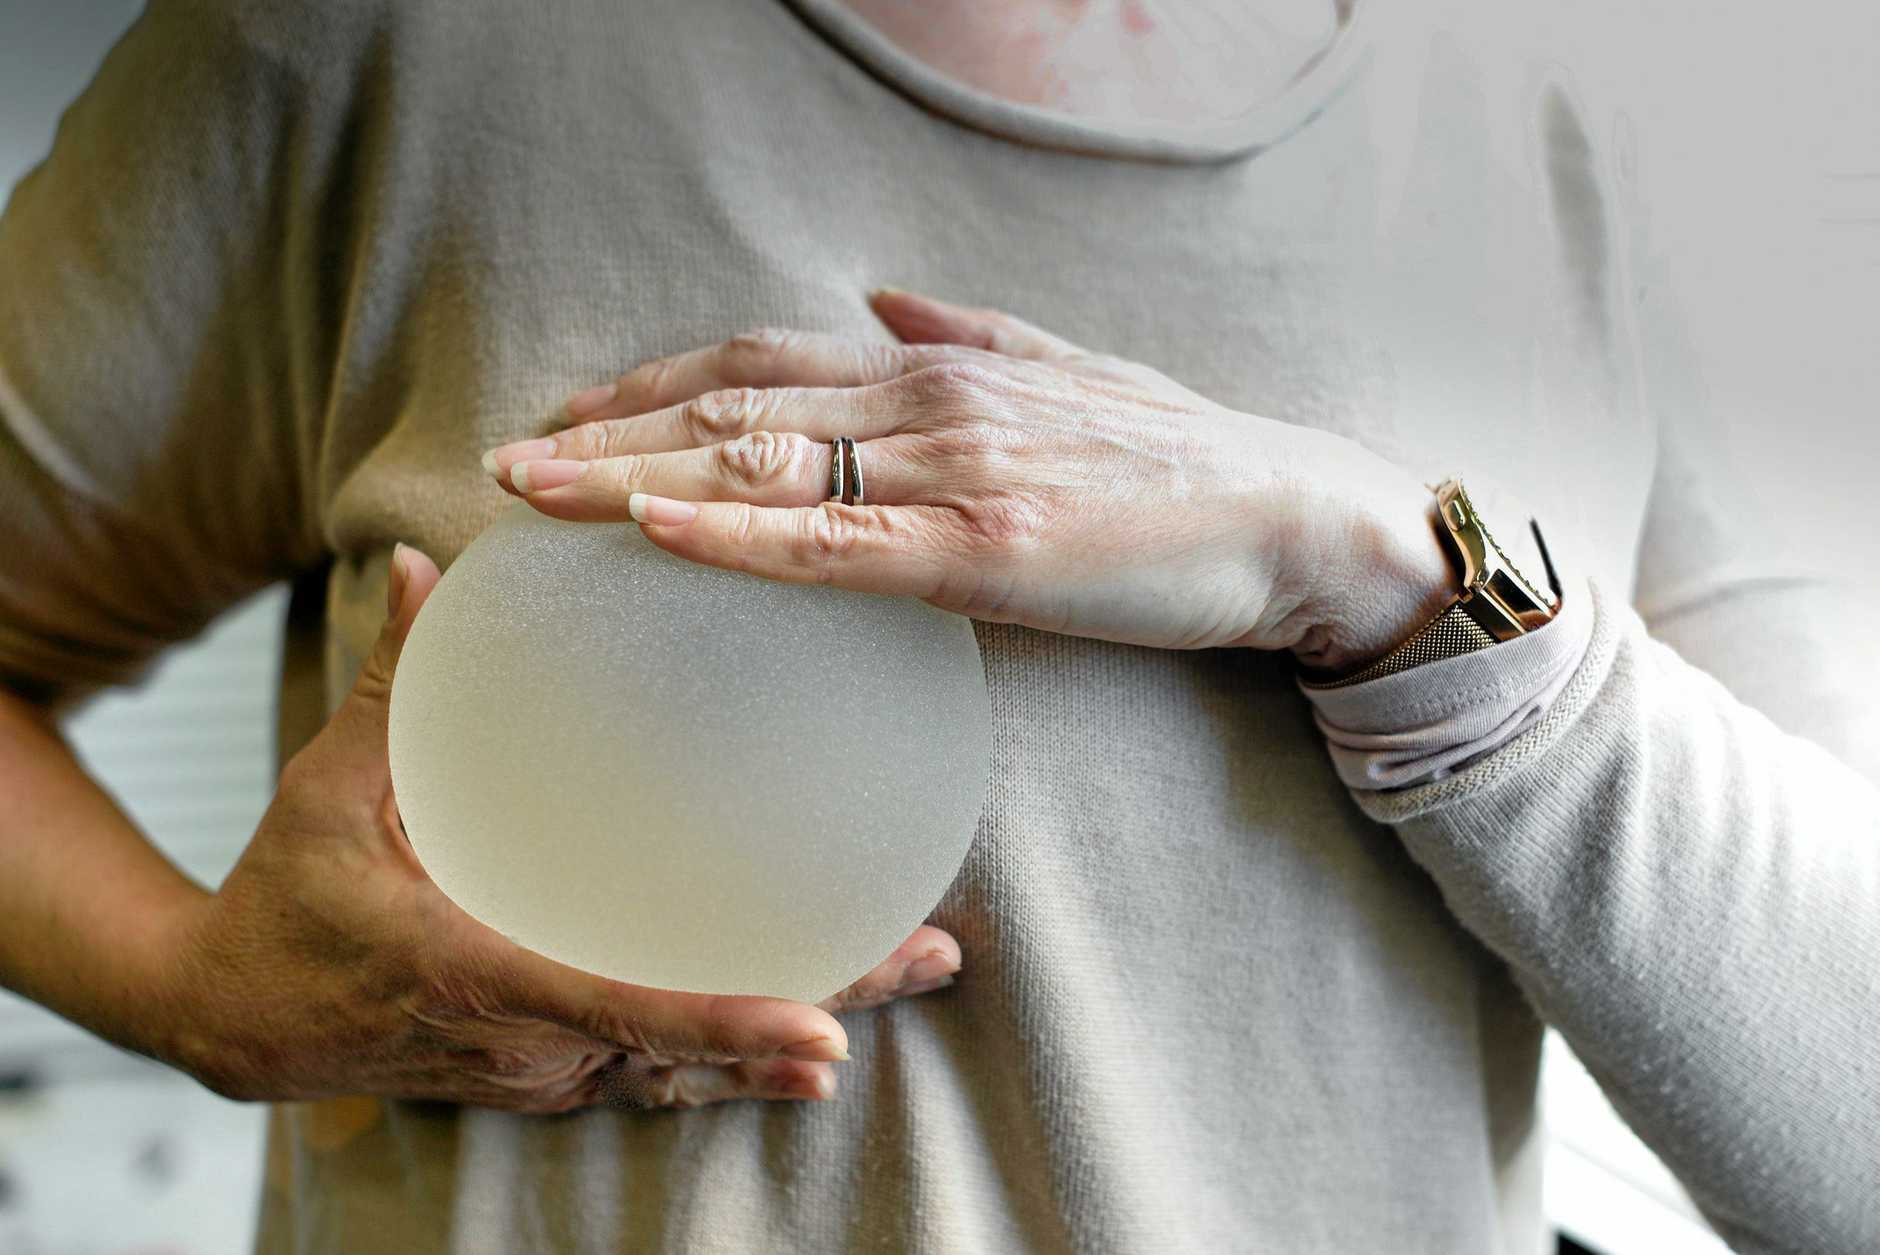 BREAST HEALTH: Learn from an expert the facts about the link between breast cancer and breast implants.